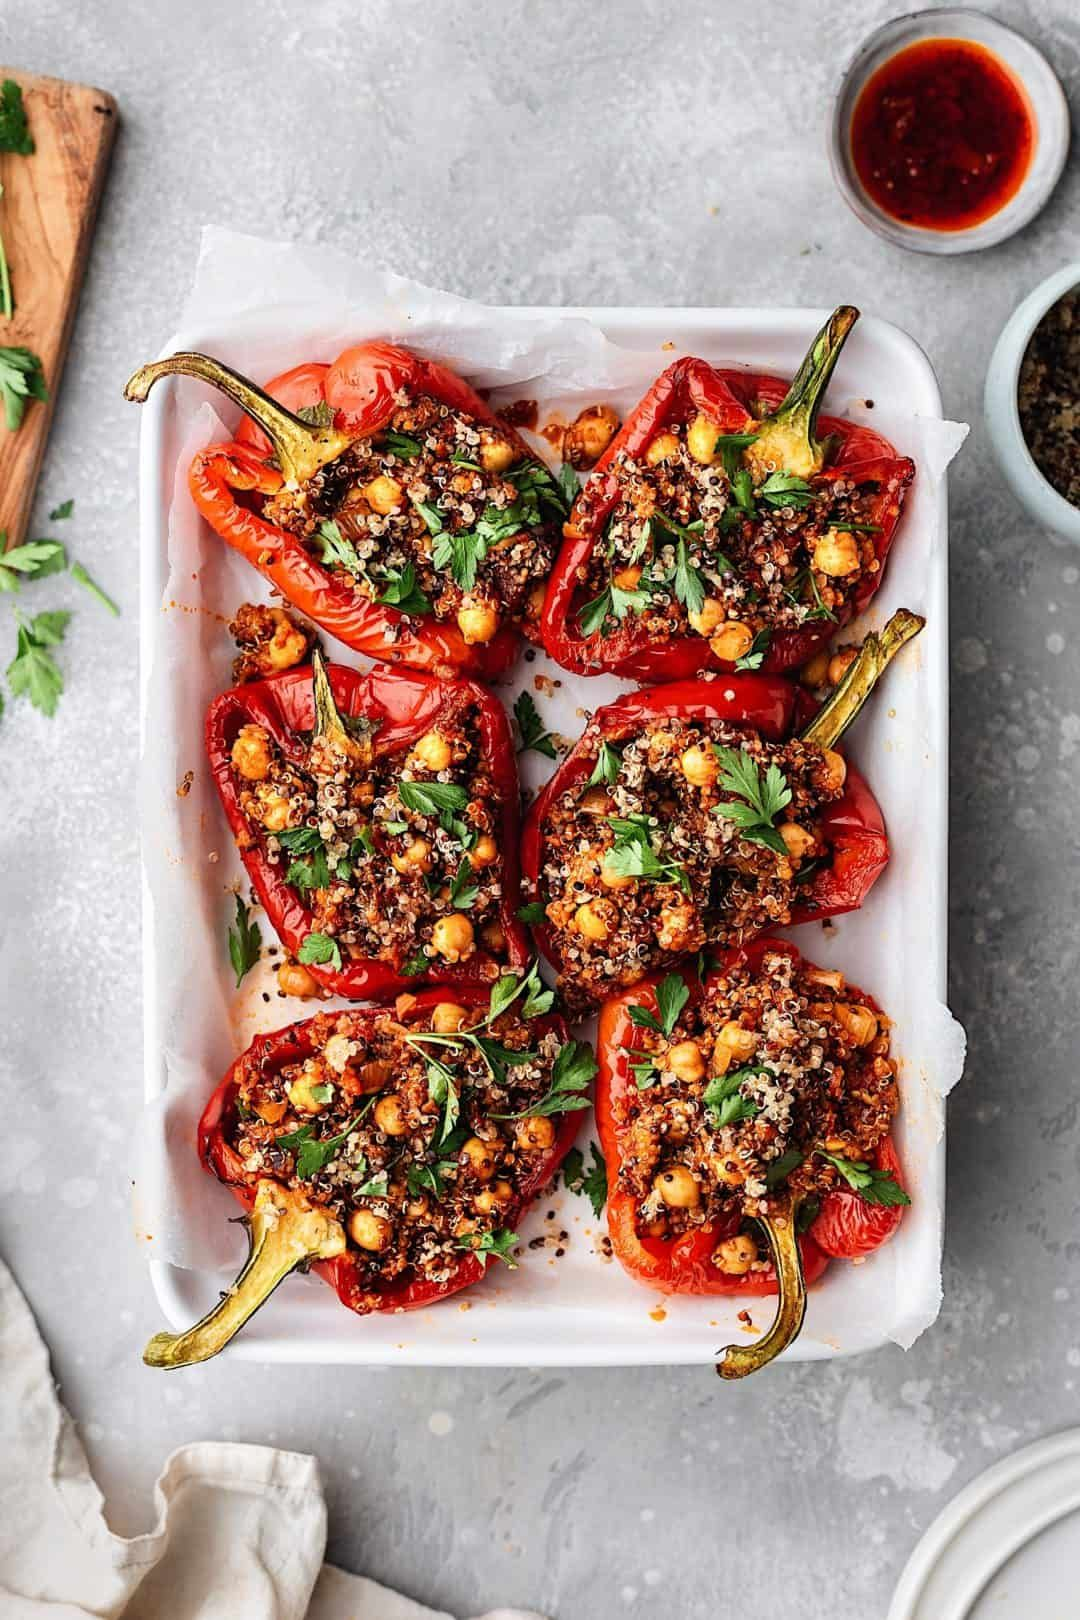 Chickpea And Quinoa Harissa Stuffed Peppers Cupful Of Kale Recipe Stuffed Peppers Peppers Recipes Harissa Recipes